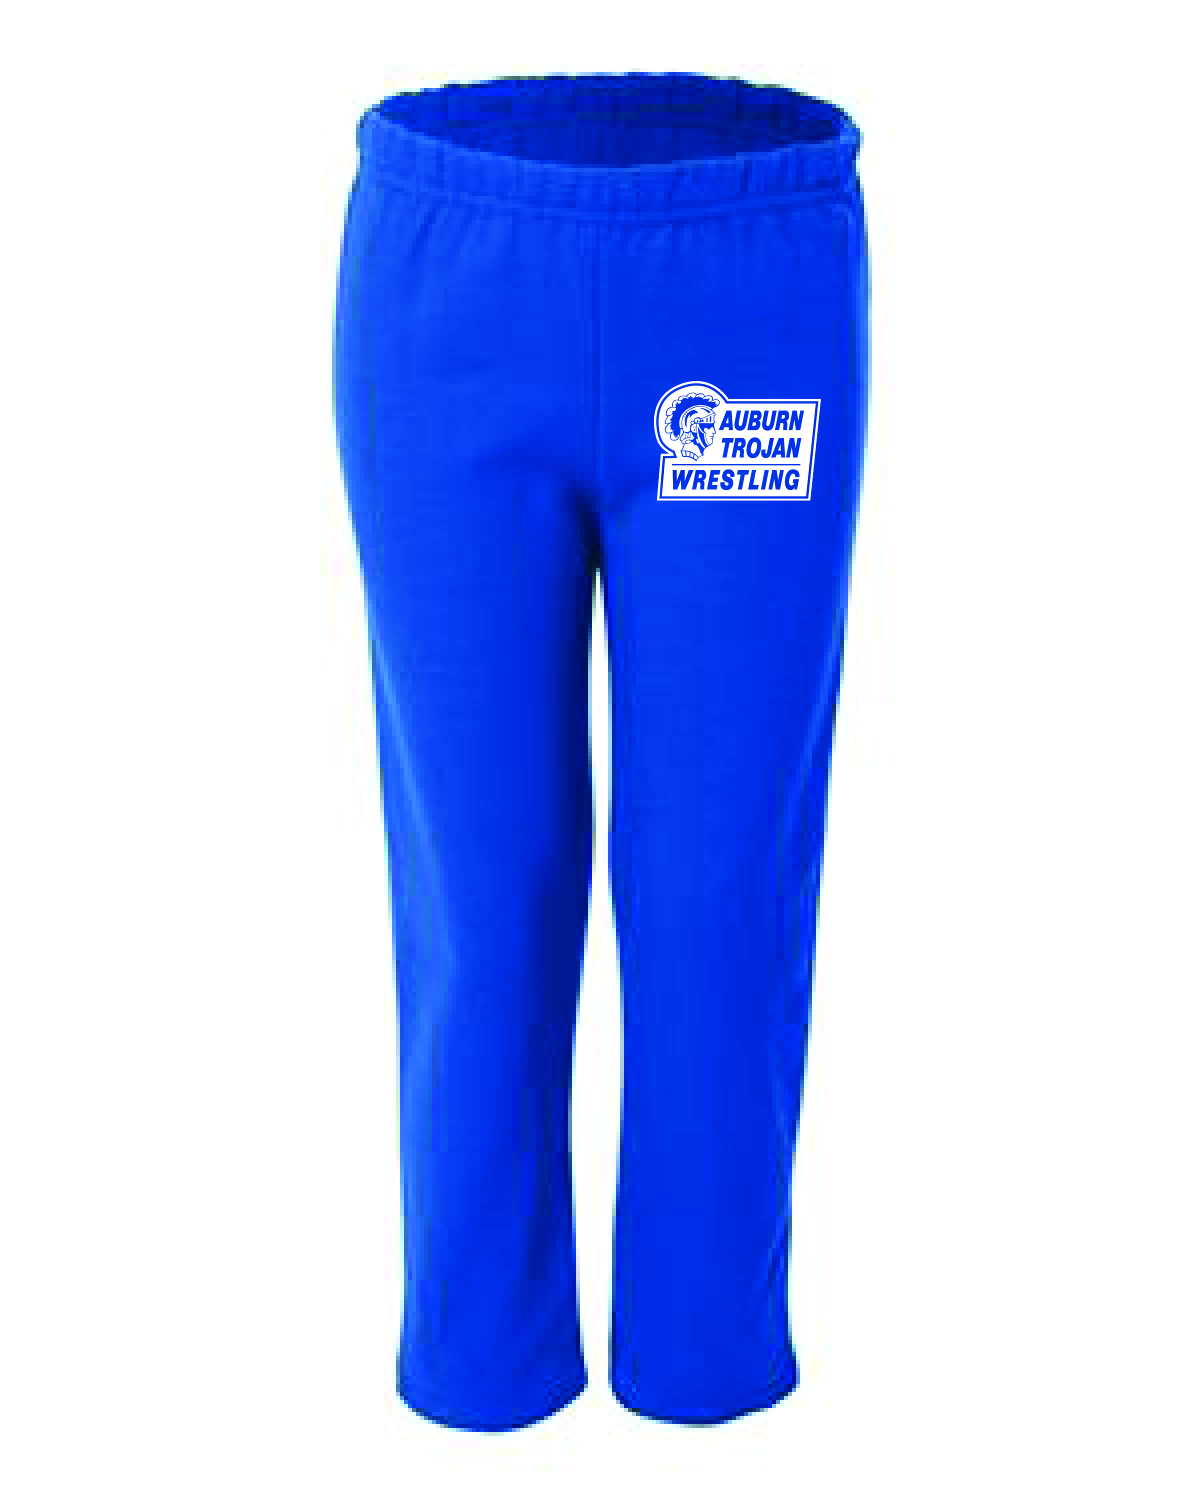 WRESTLING Gildan - Heavy Blend™  Open-Bottom Sweatpants  (MENS BLUE) LIMITED INVENTORY!